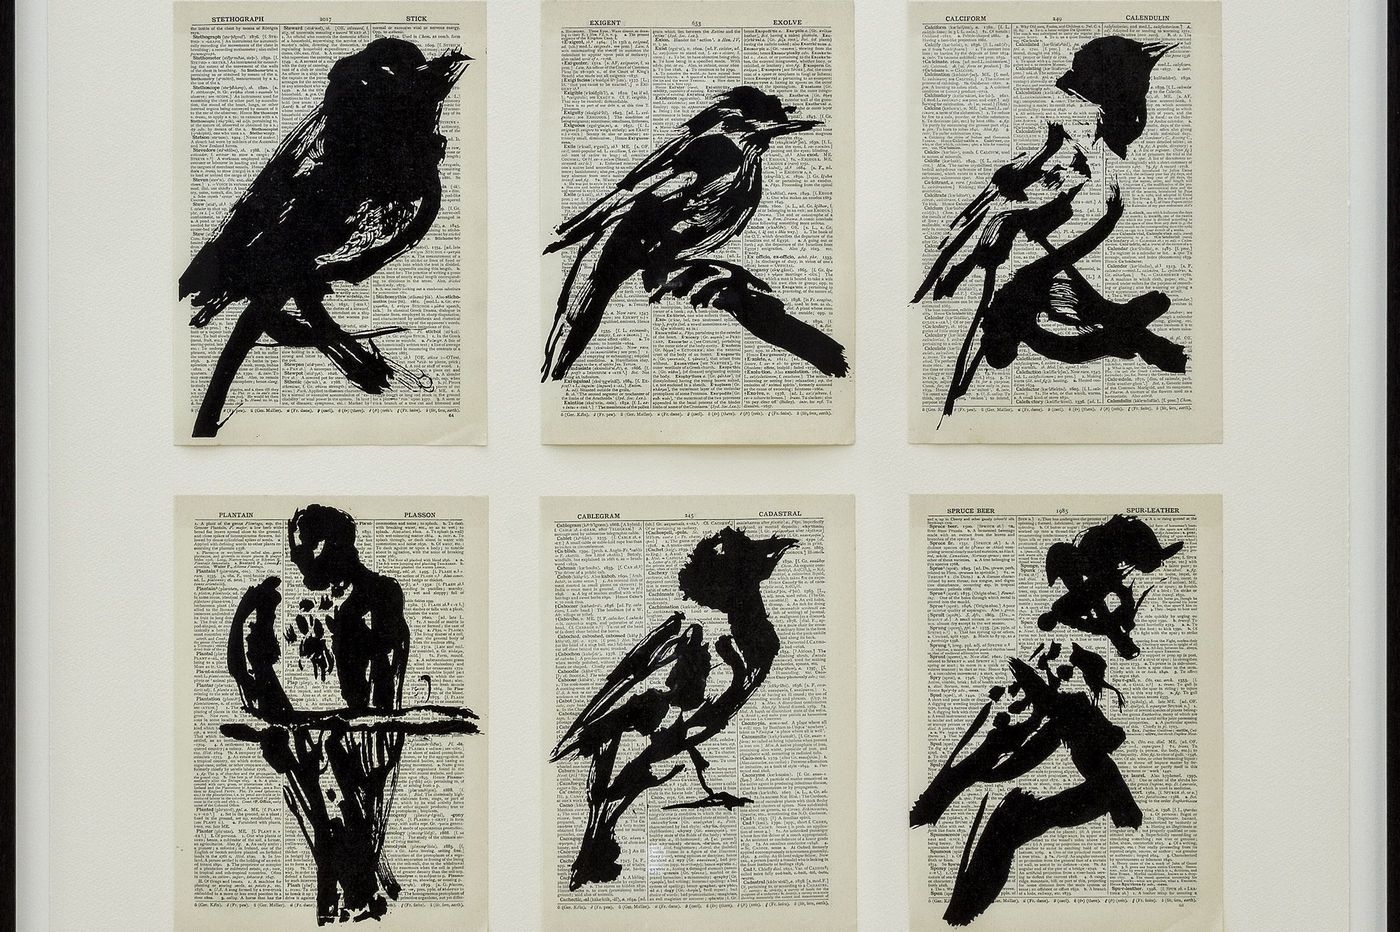 In Philly galleries now: William Kentridge linocuts, UK roadside views, painted Philadelphia